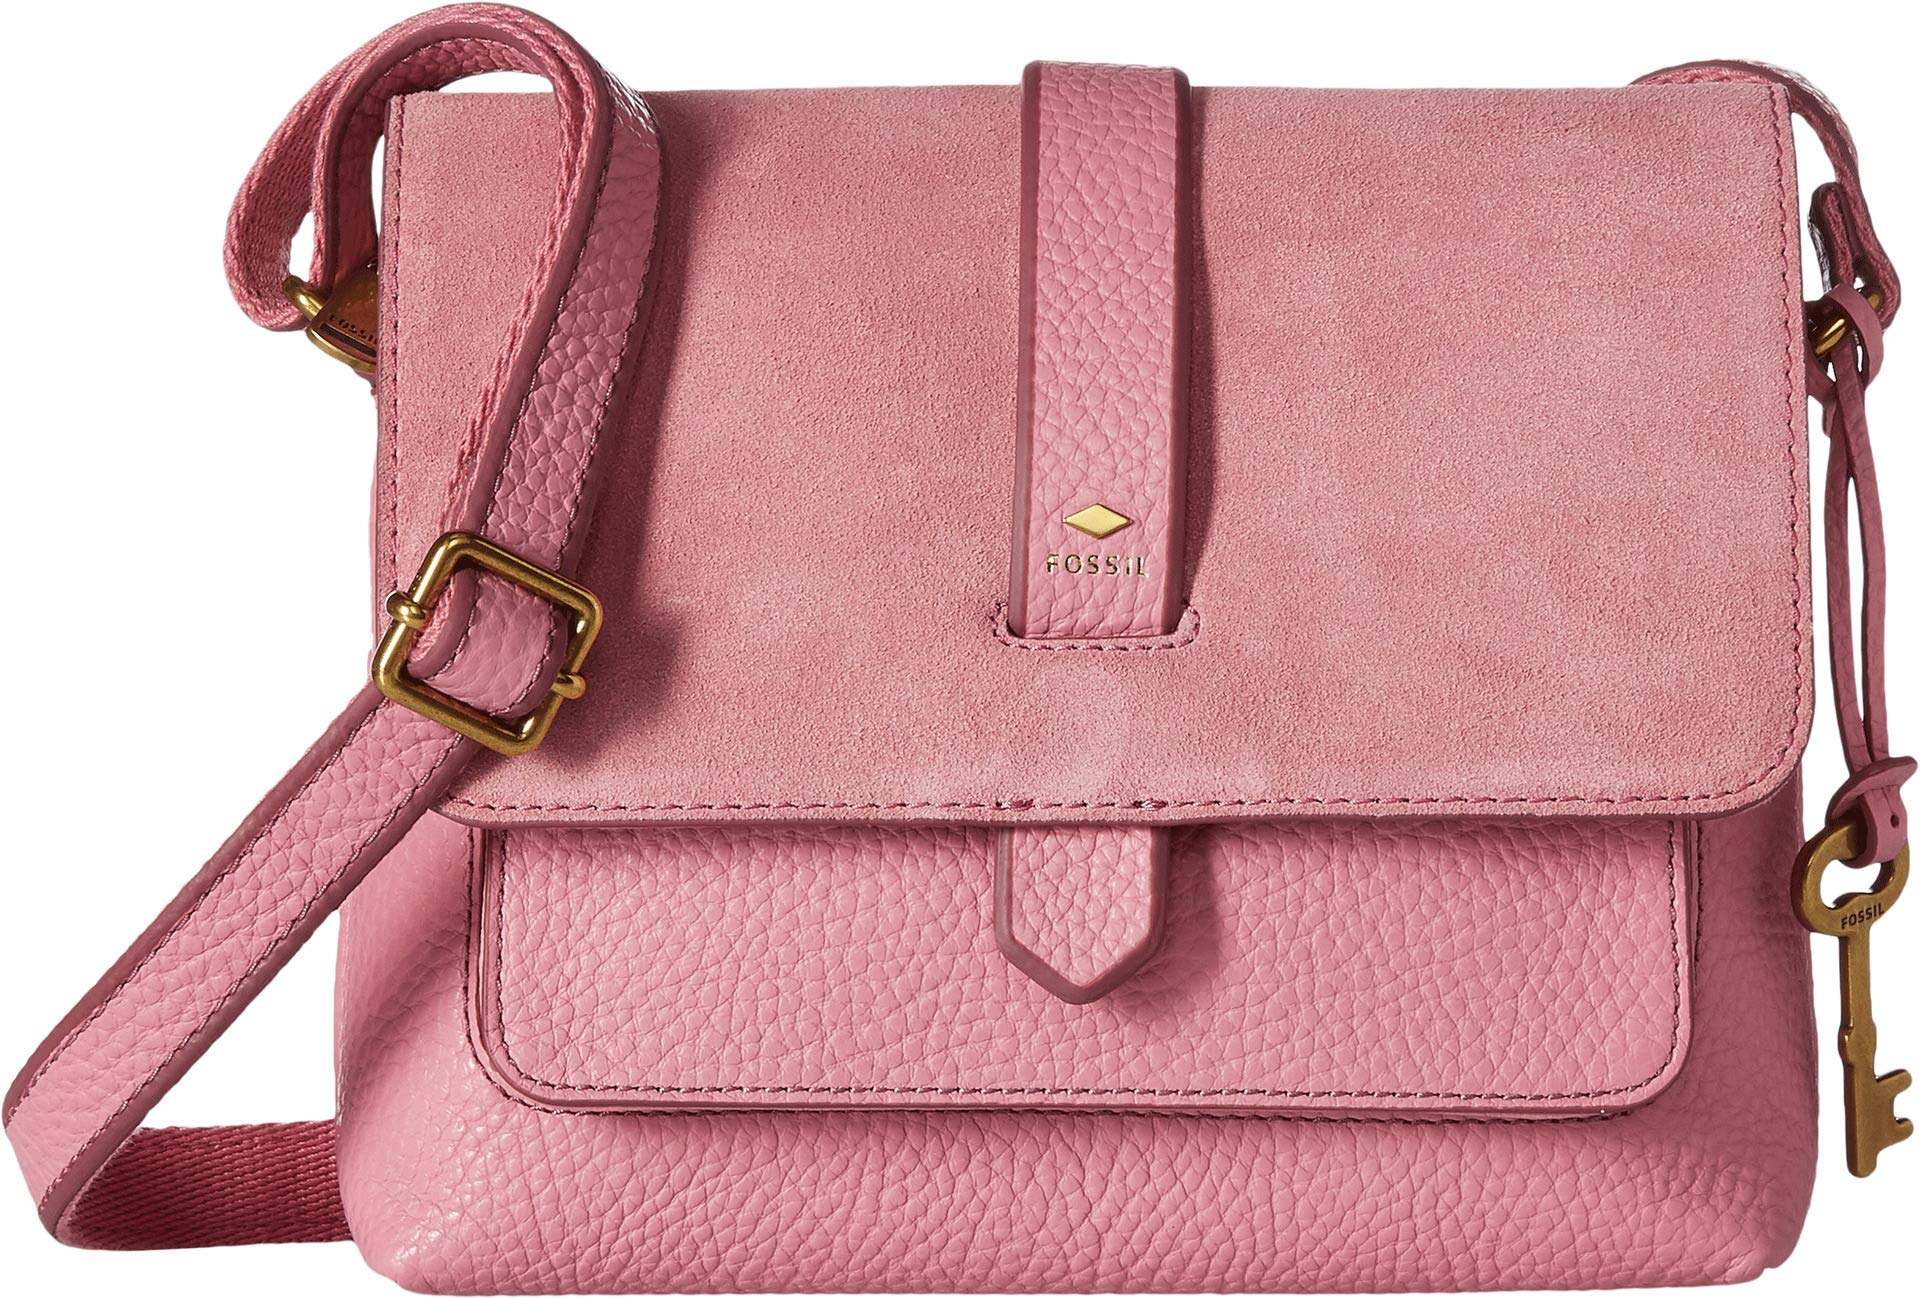 Fossil Kinley Small Crossbody Bag, Wild Rose